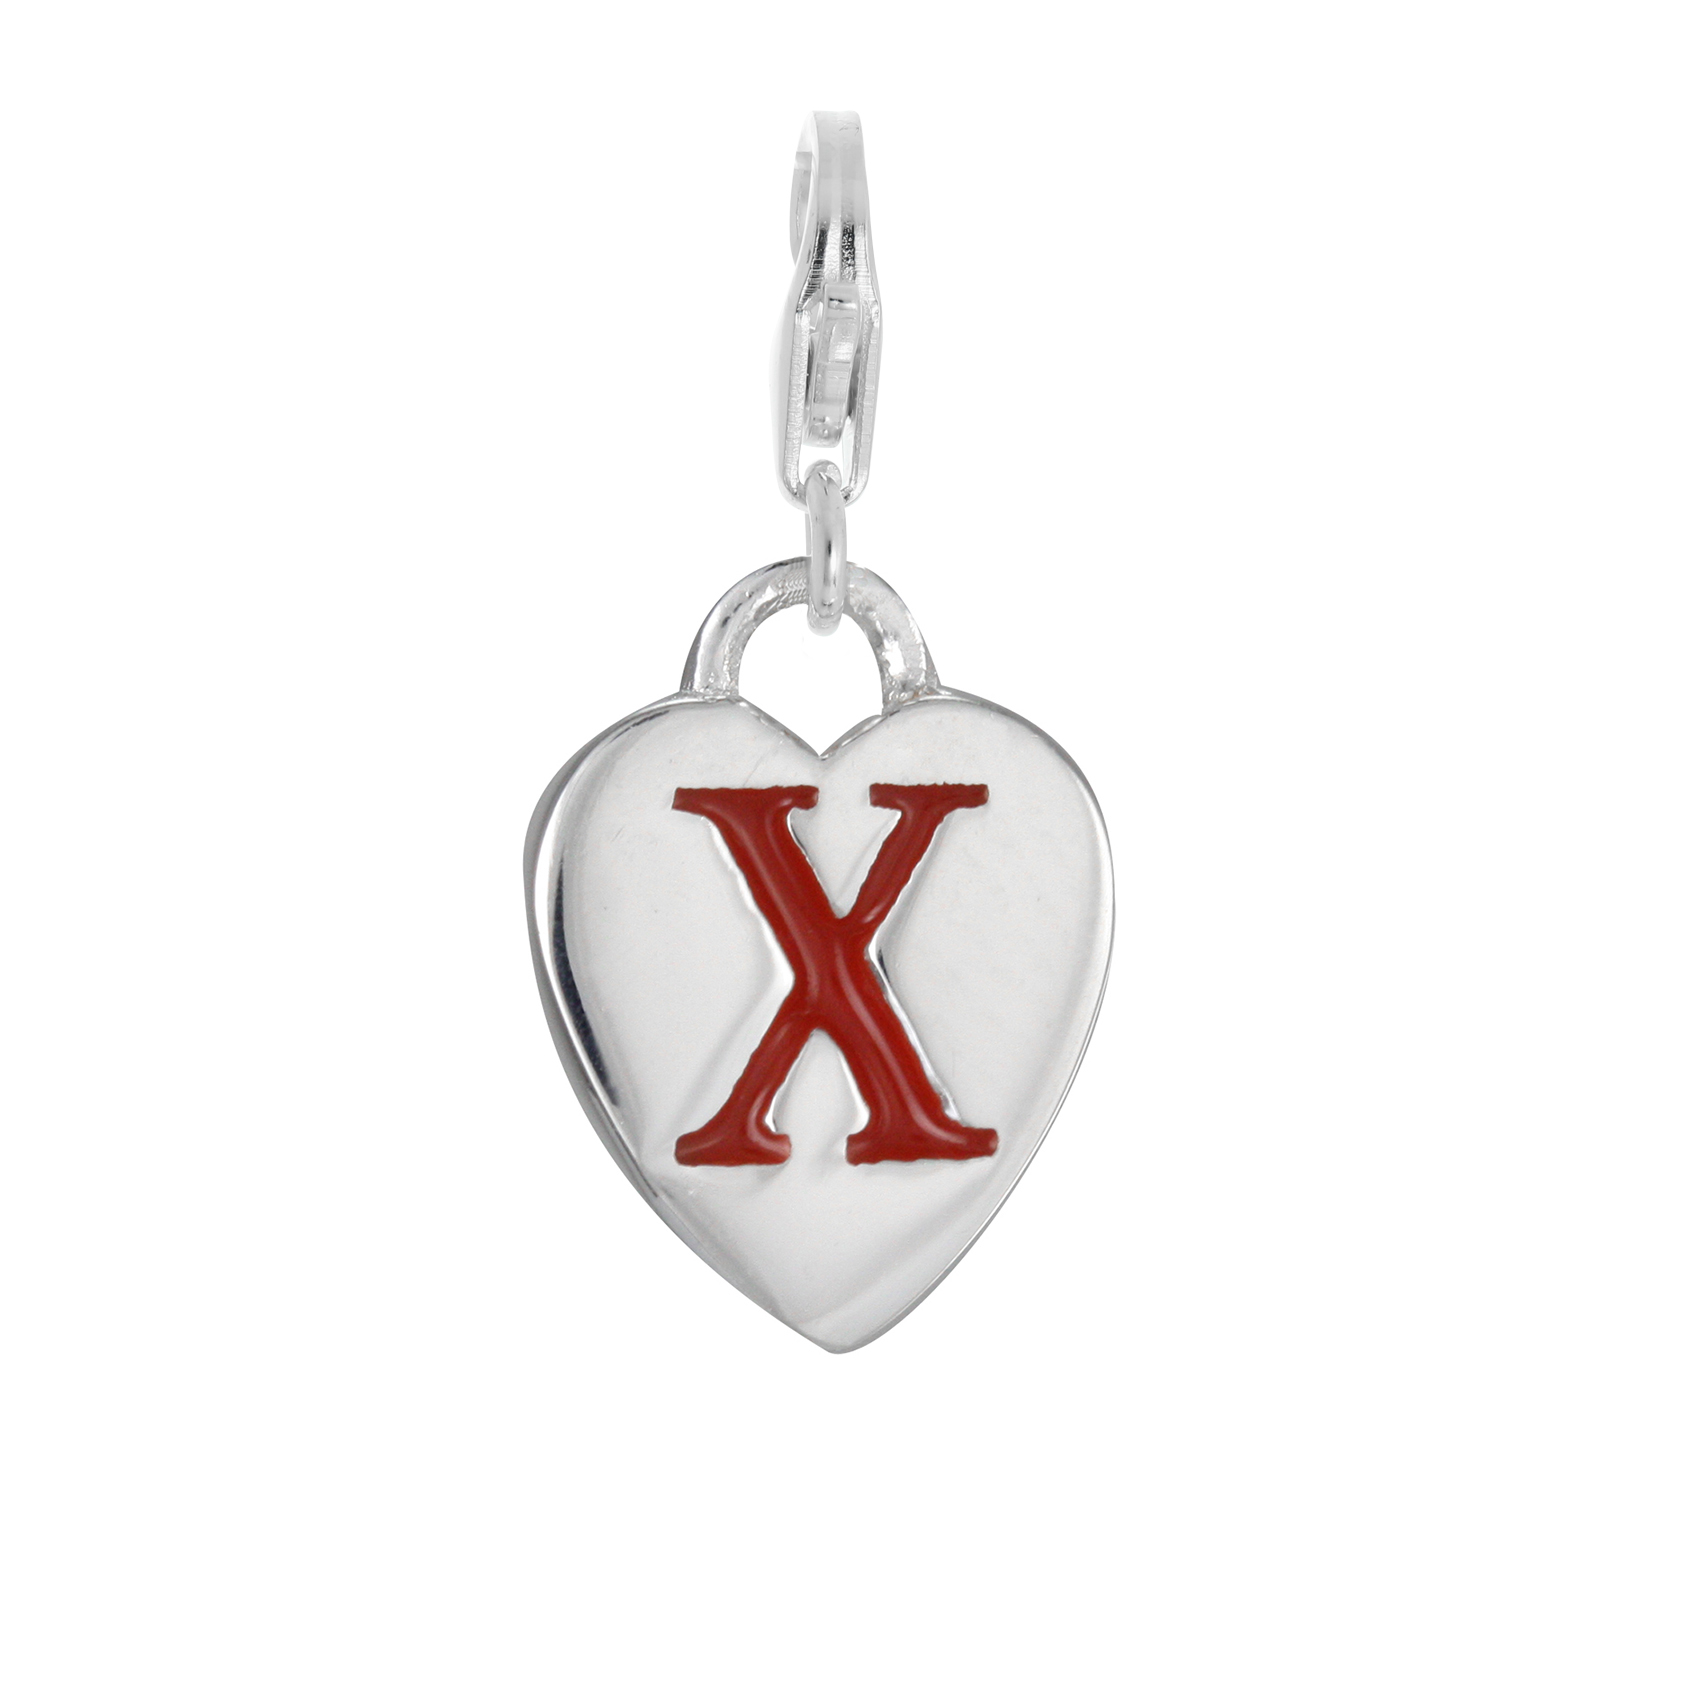 An image of Sterling Silver Enamel Heart Alphabet Letter X Charm on Clip